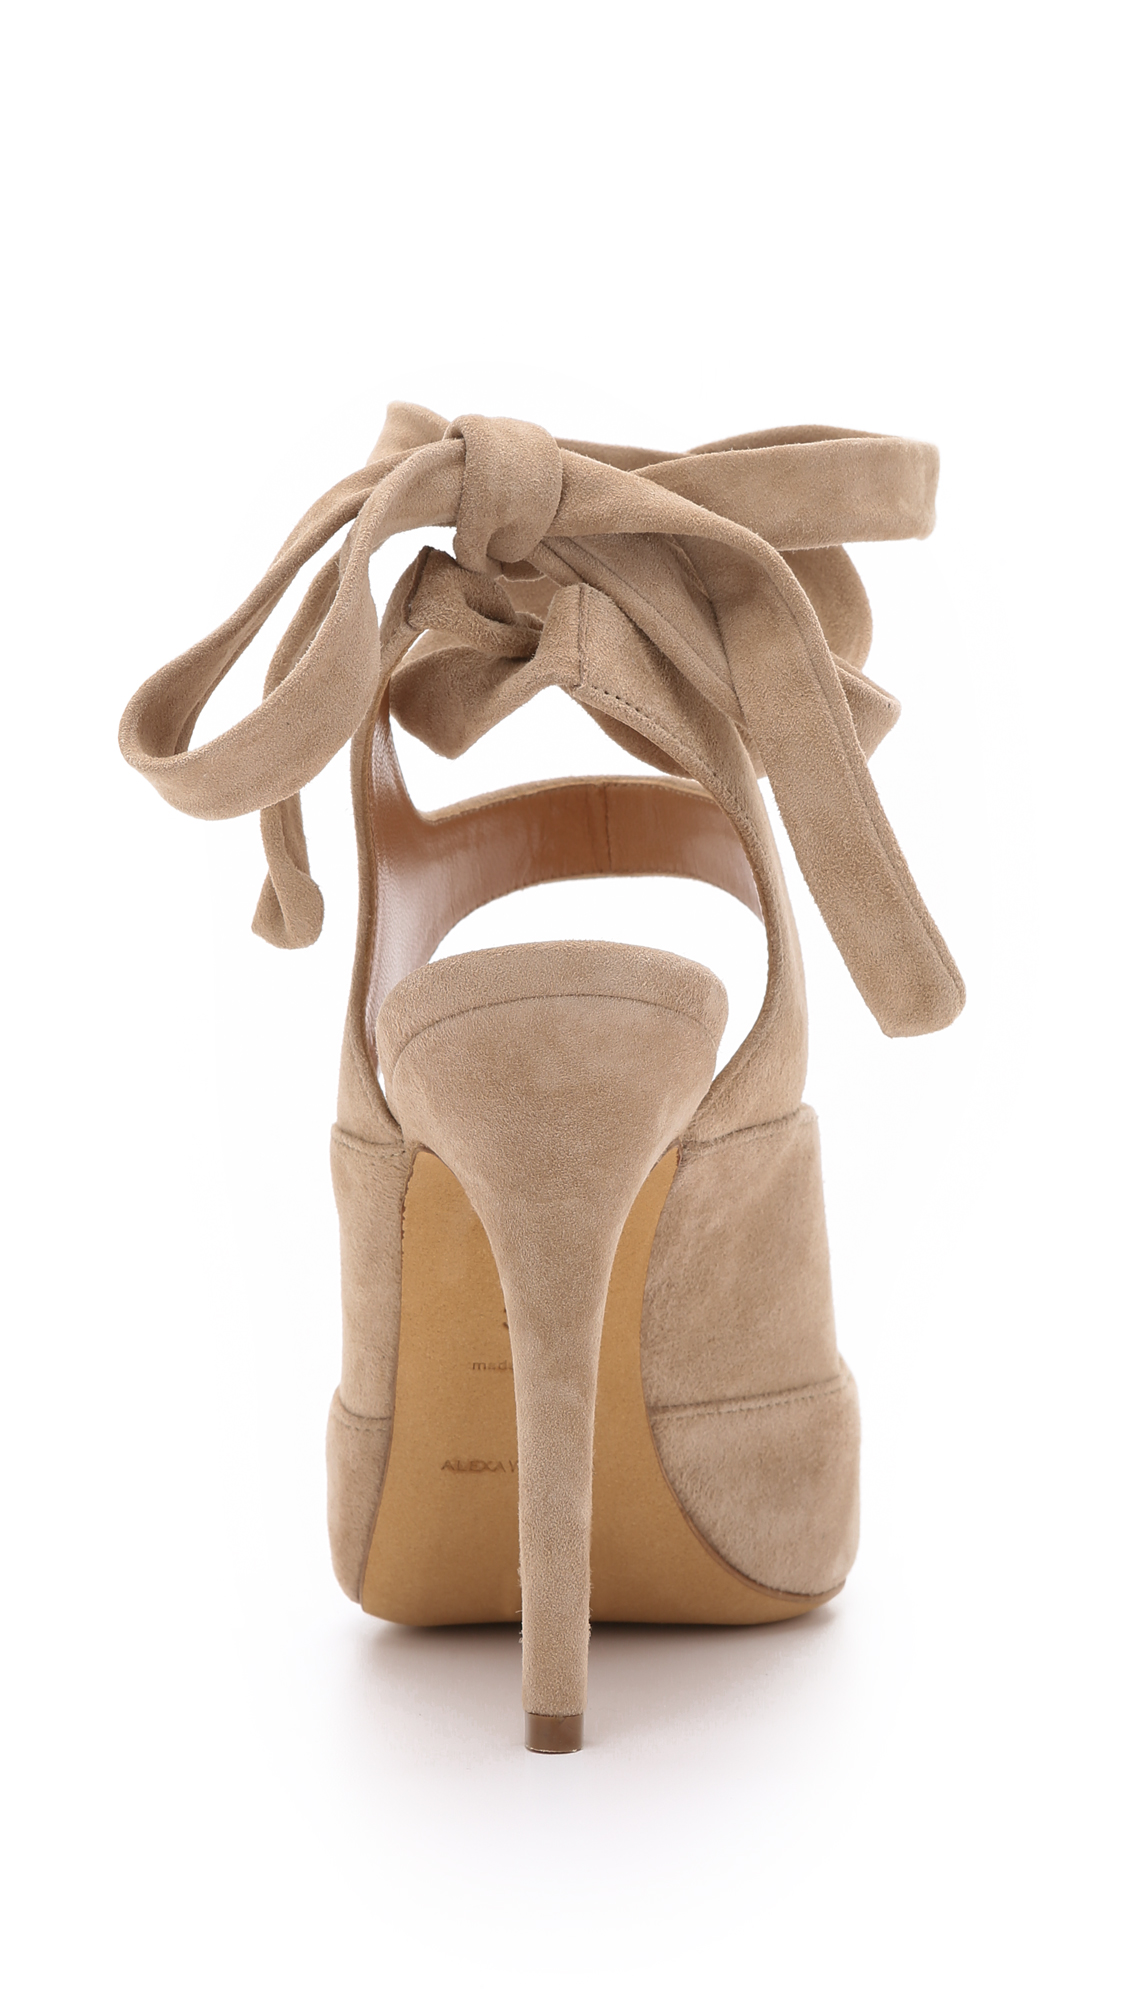 Alexa Wagner Suede Raffaella Sandals cheap footlocker pictures cheap online shop with paypal sale online get authentic PwnSBqKze